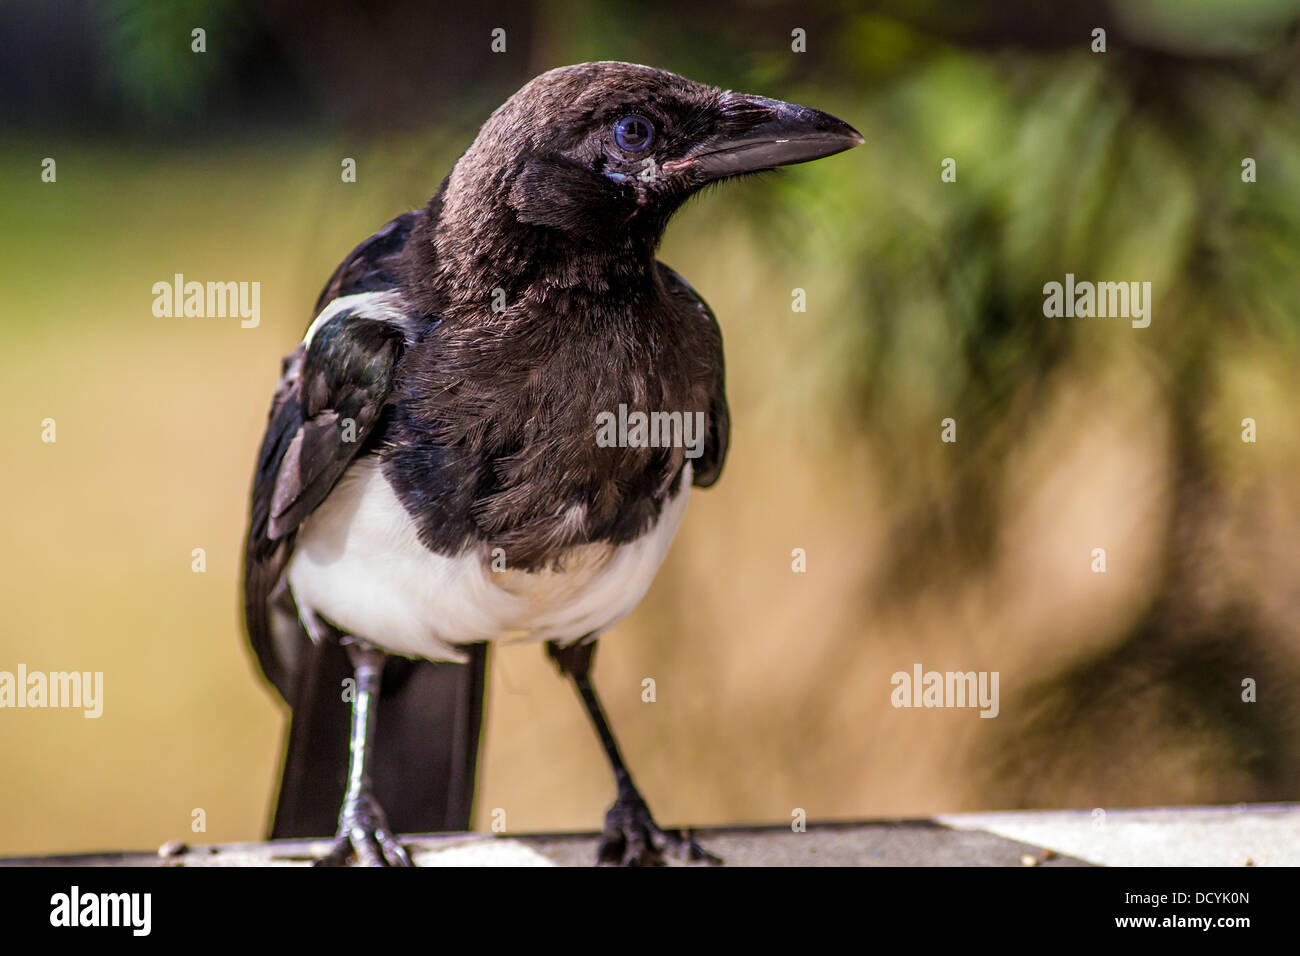 Black-billed Magpie (Pica hudsonia) Colorful, close up, portrait of magpie sitting on platform feeder. Calgary, - Stock Image